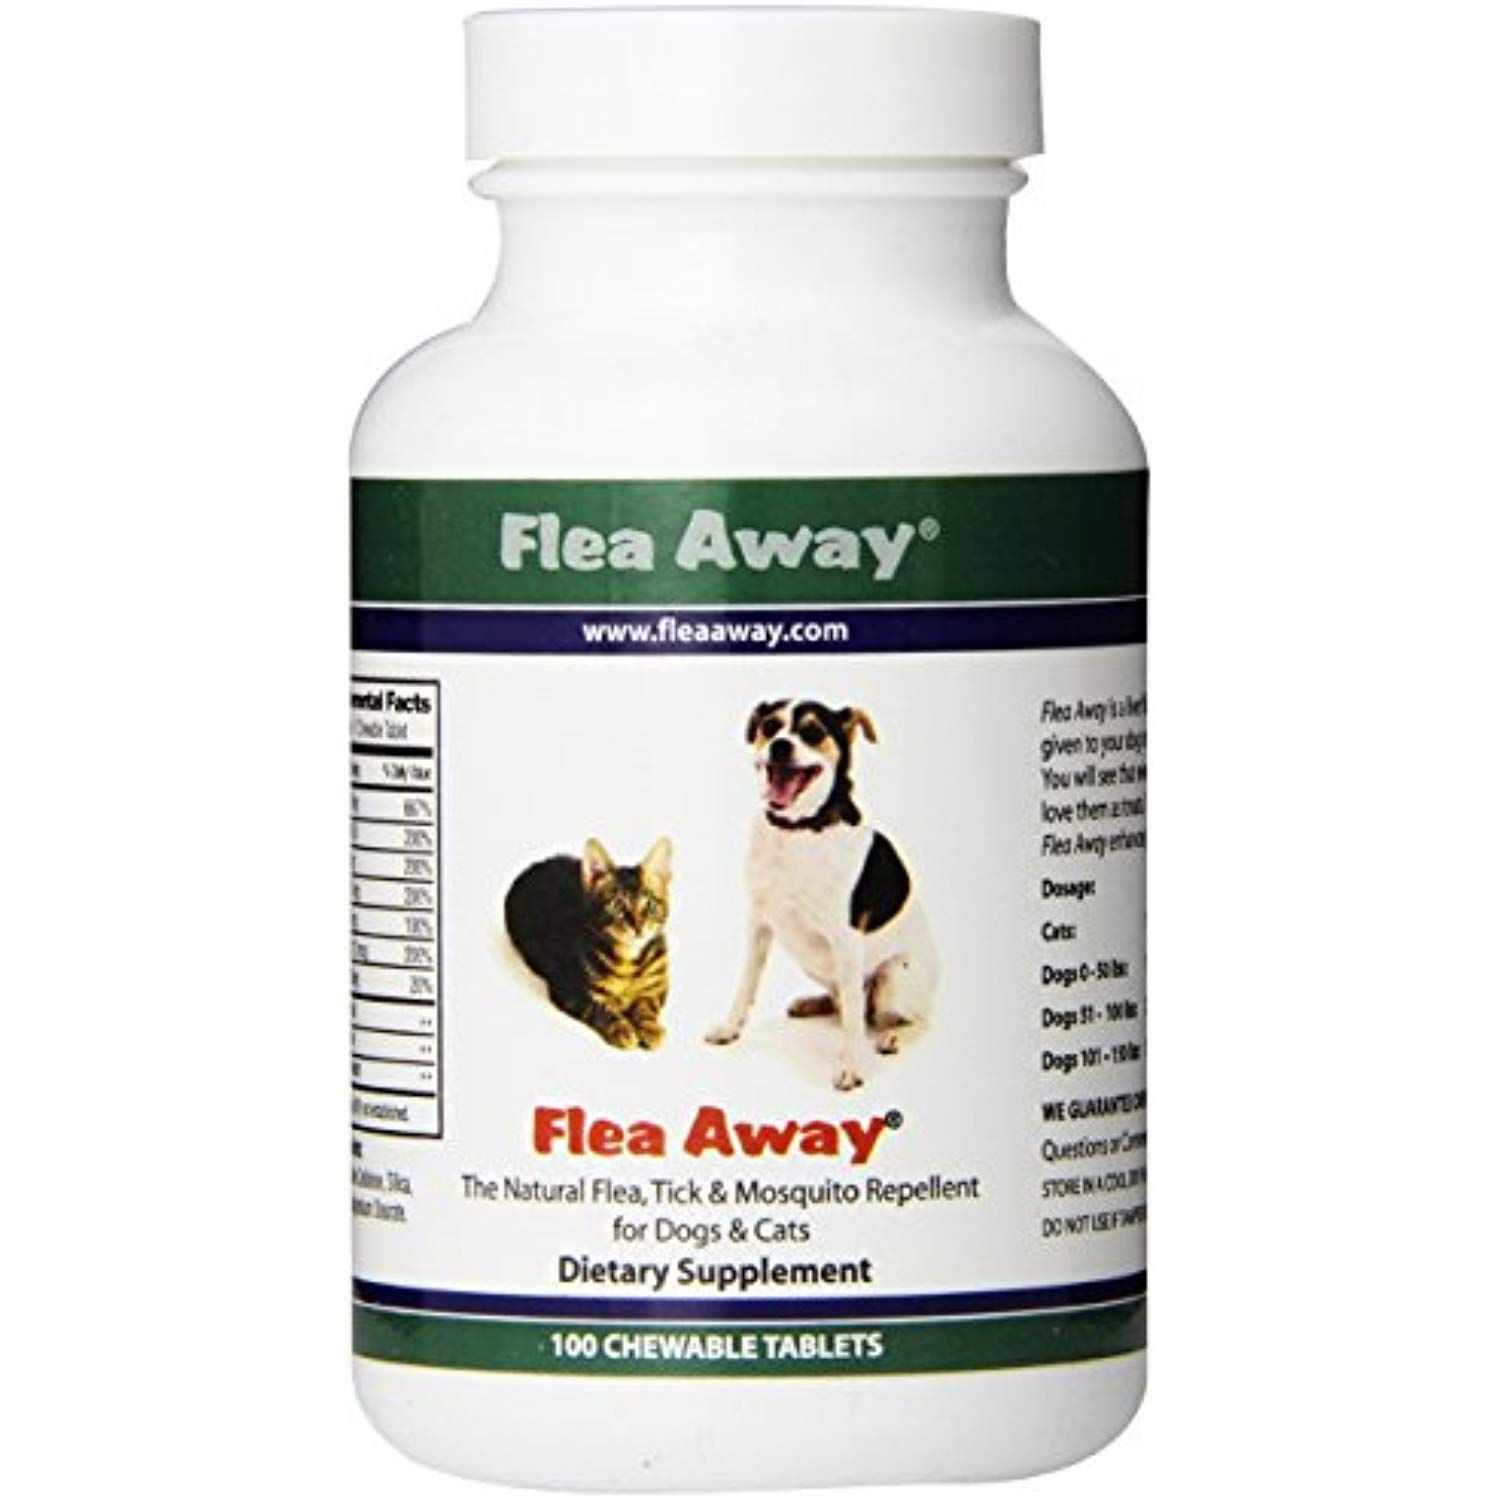 Flea Away The Natural Flea Tick And Mosquito Repellent For Dogs And Cats 100 Chewable Tablets To View F Mosquito Repellent For Dogs Flea Repellent Fleas